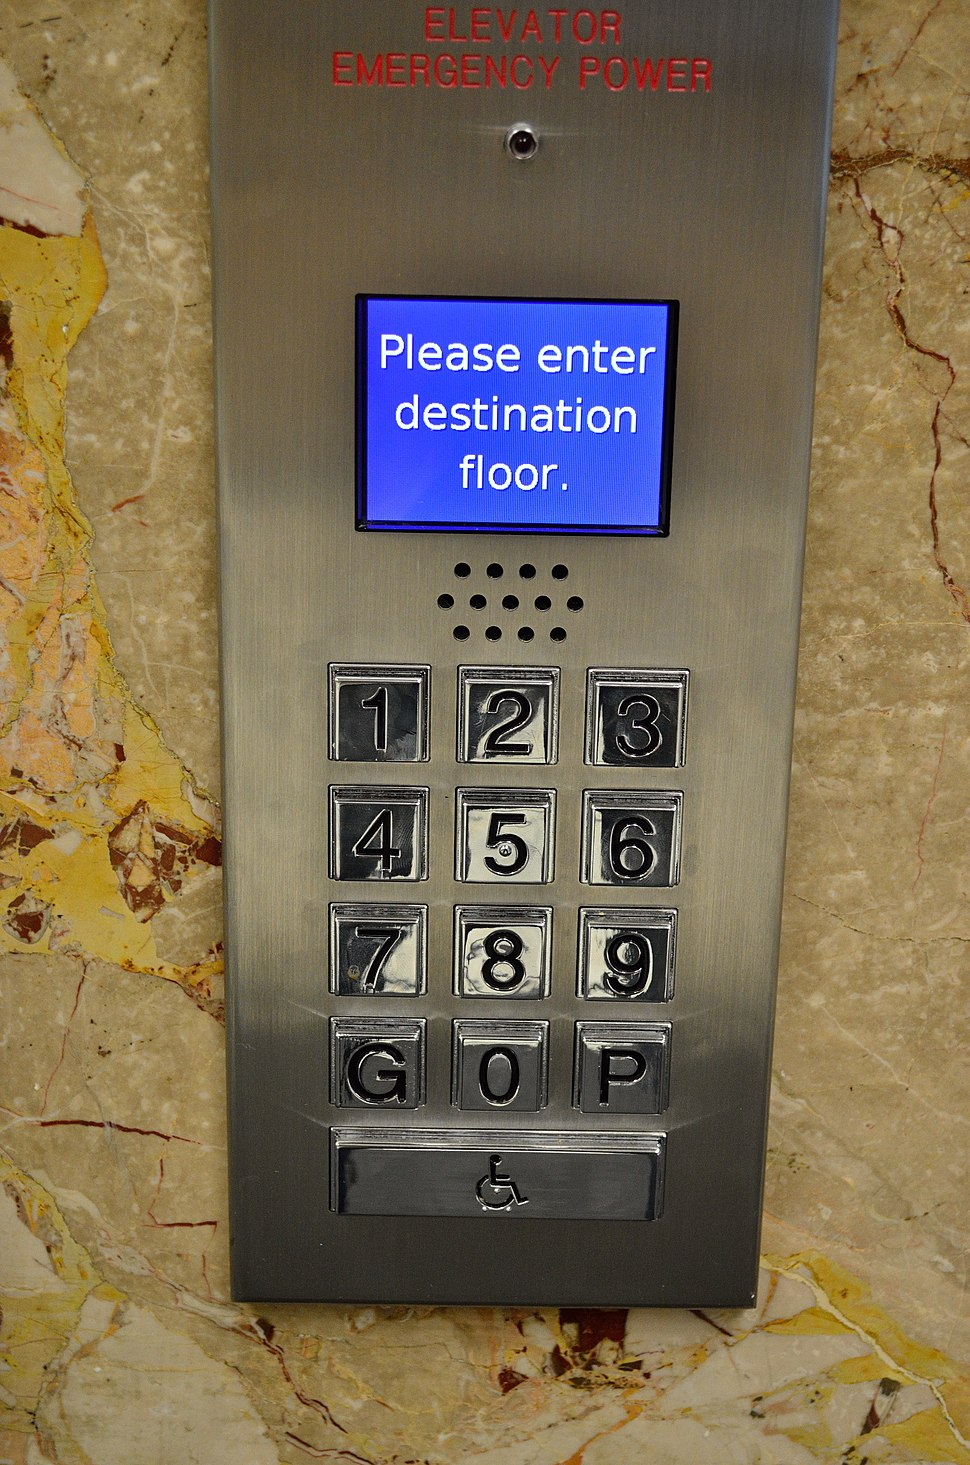 DestinationDispatchElevator